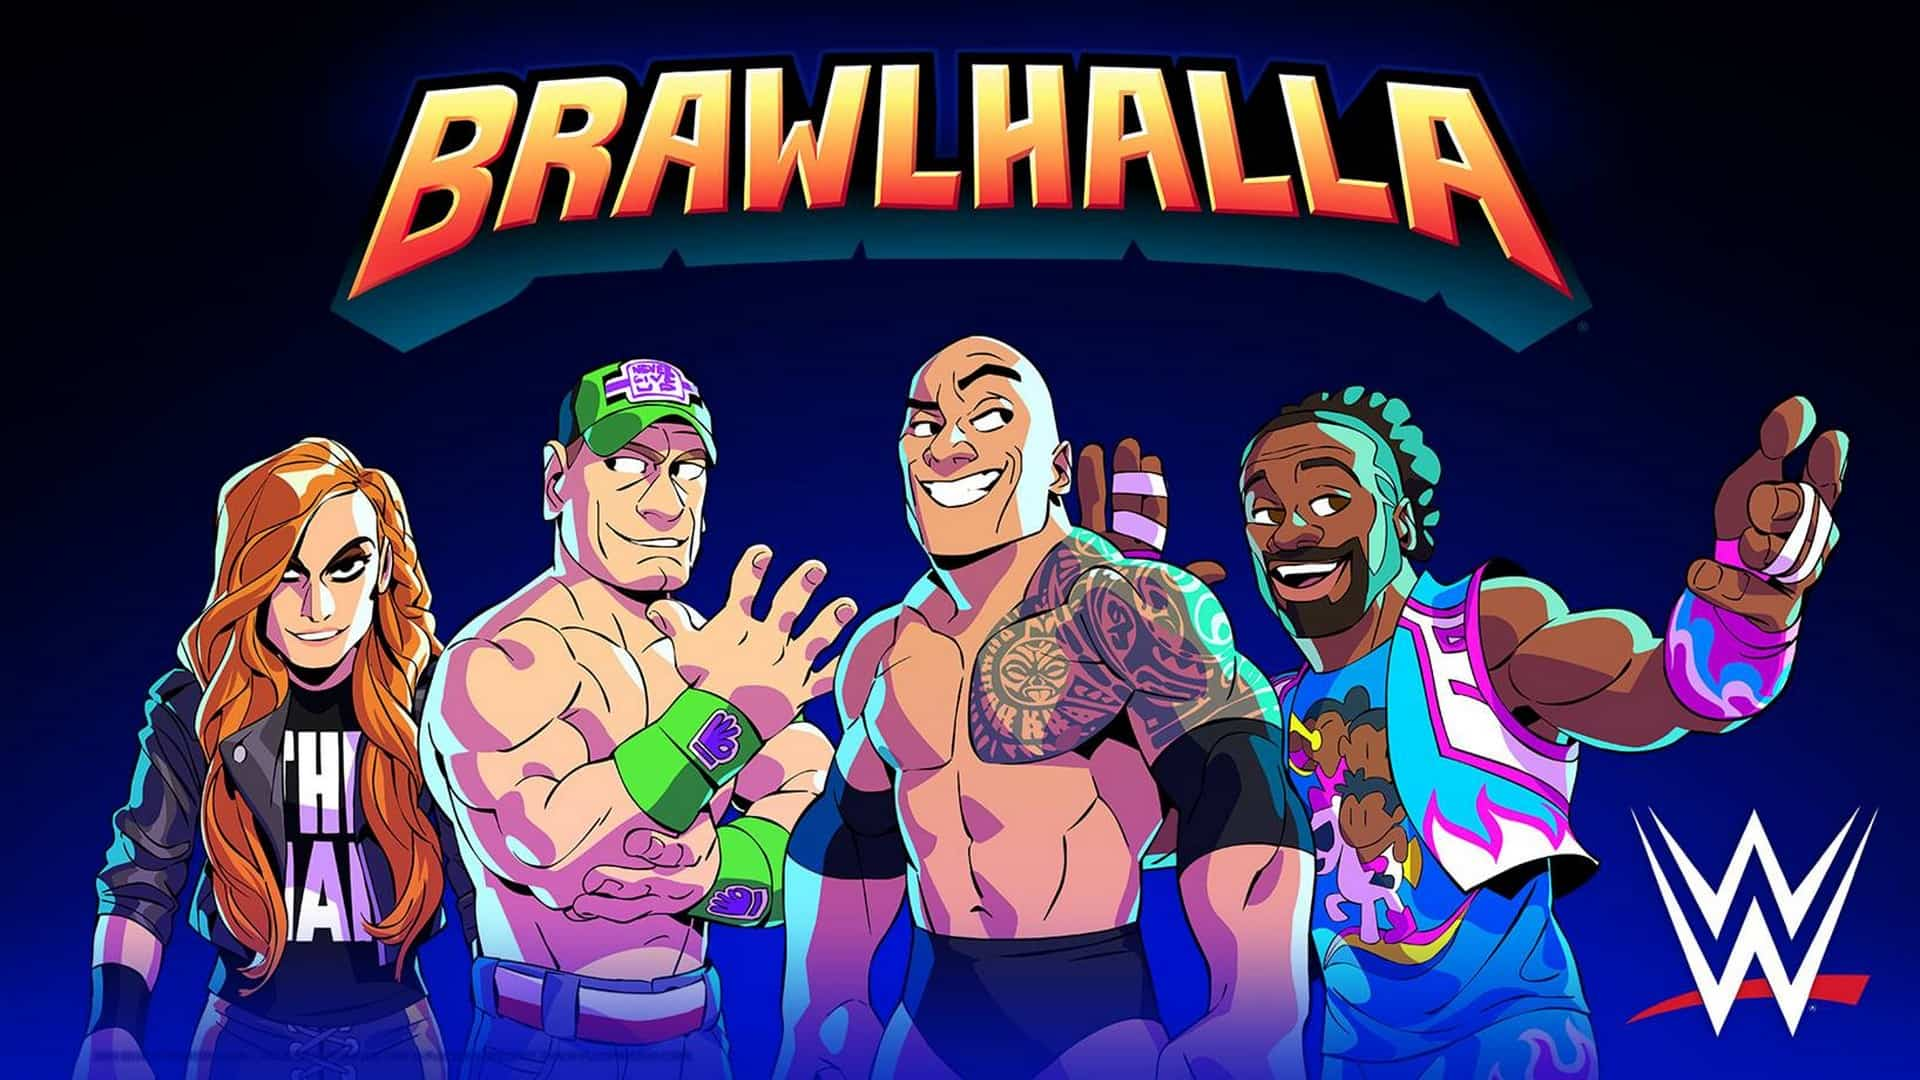 WWE Superstars Join BRAWLHALLA As Epic Crossovers in Special SummerSlam Themed In-Game Event